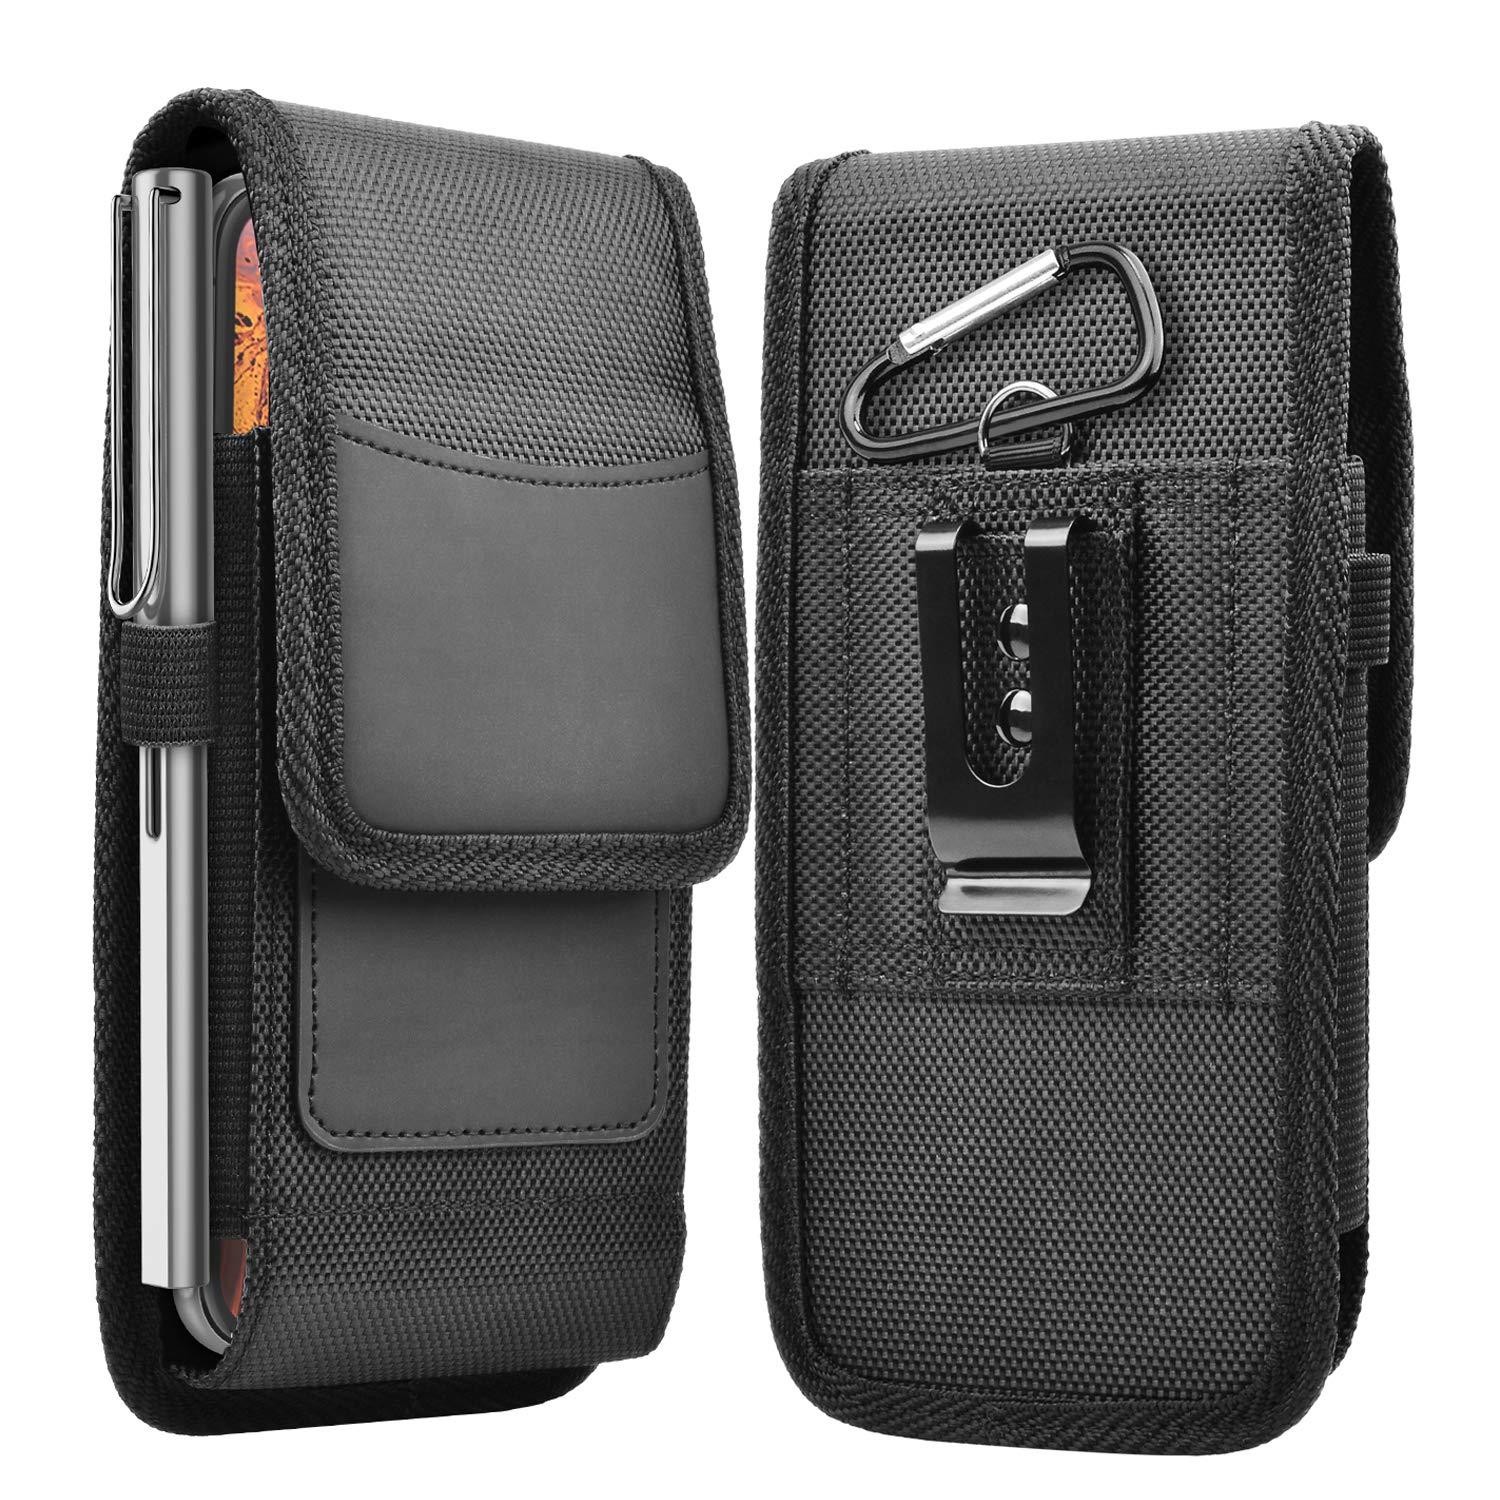 Takfox Phone Holster for Samsung Galaxy S20 Ultra S20 Plus S21 S10+ S9 S8 J7 J3, A01 A11 A21 A51 A71 A10e A20 A30 A50, K51 Stylo 6 Nylon Cell Phone Belt Clip Holster Carrying Pouch w Card Holder,Black